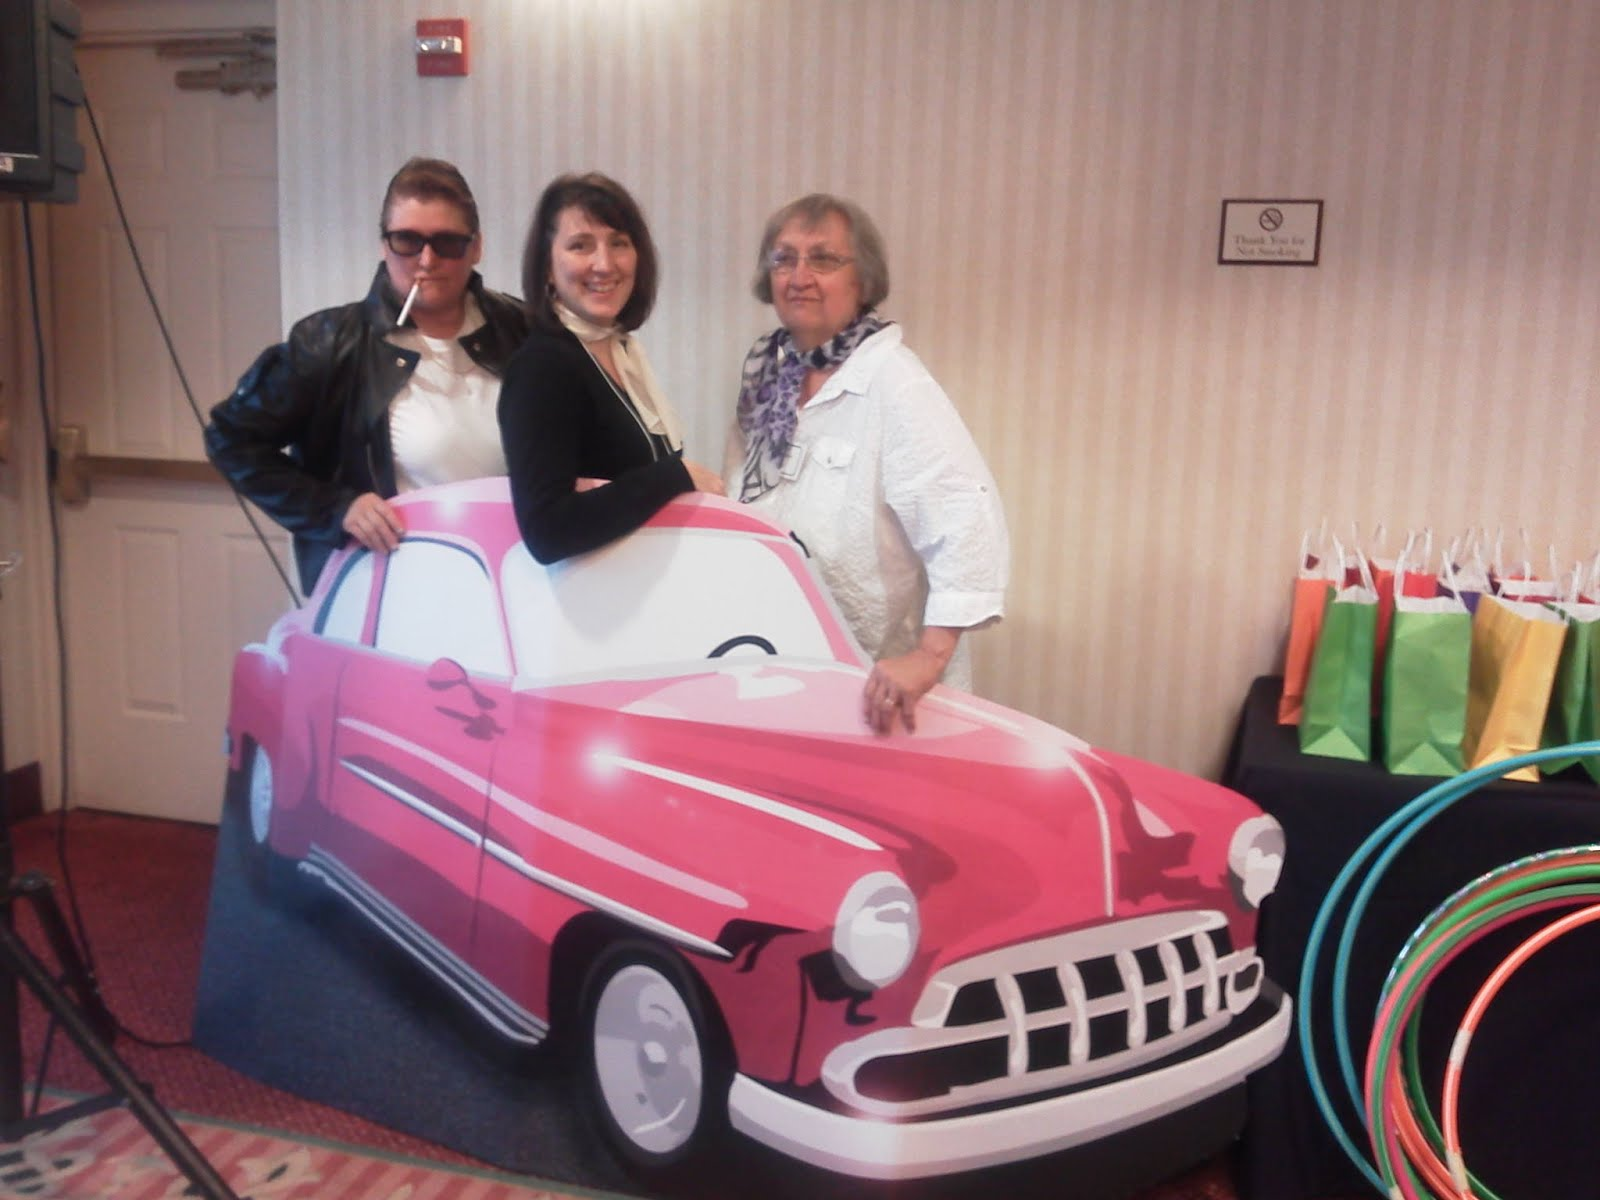 6th District Conference - Sock Hop